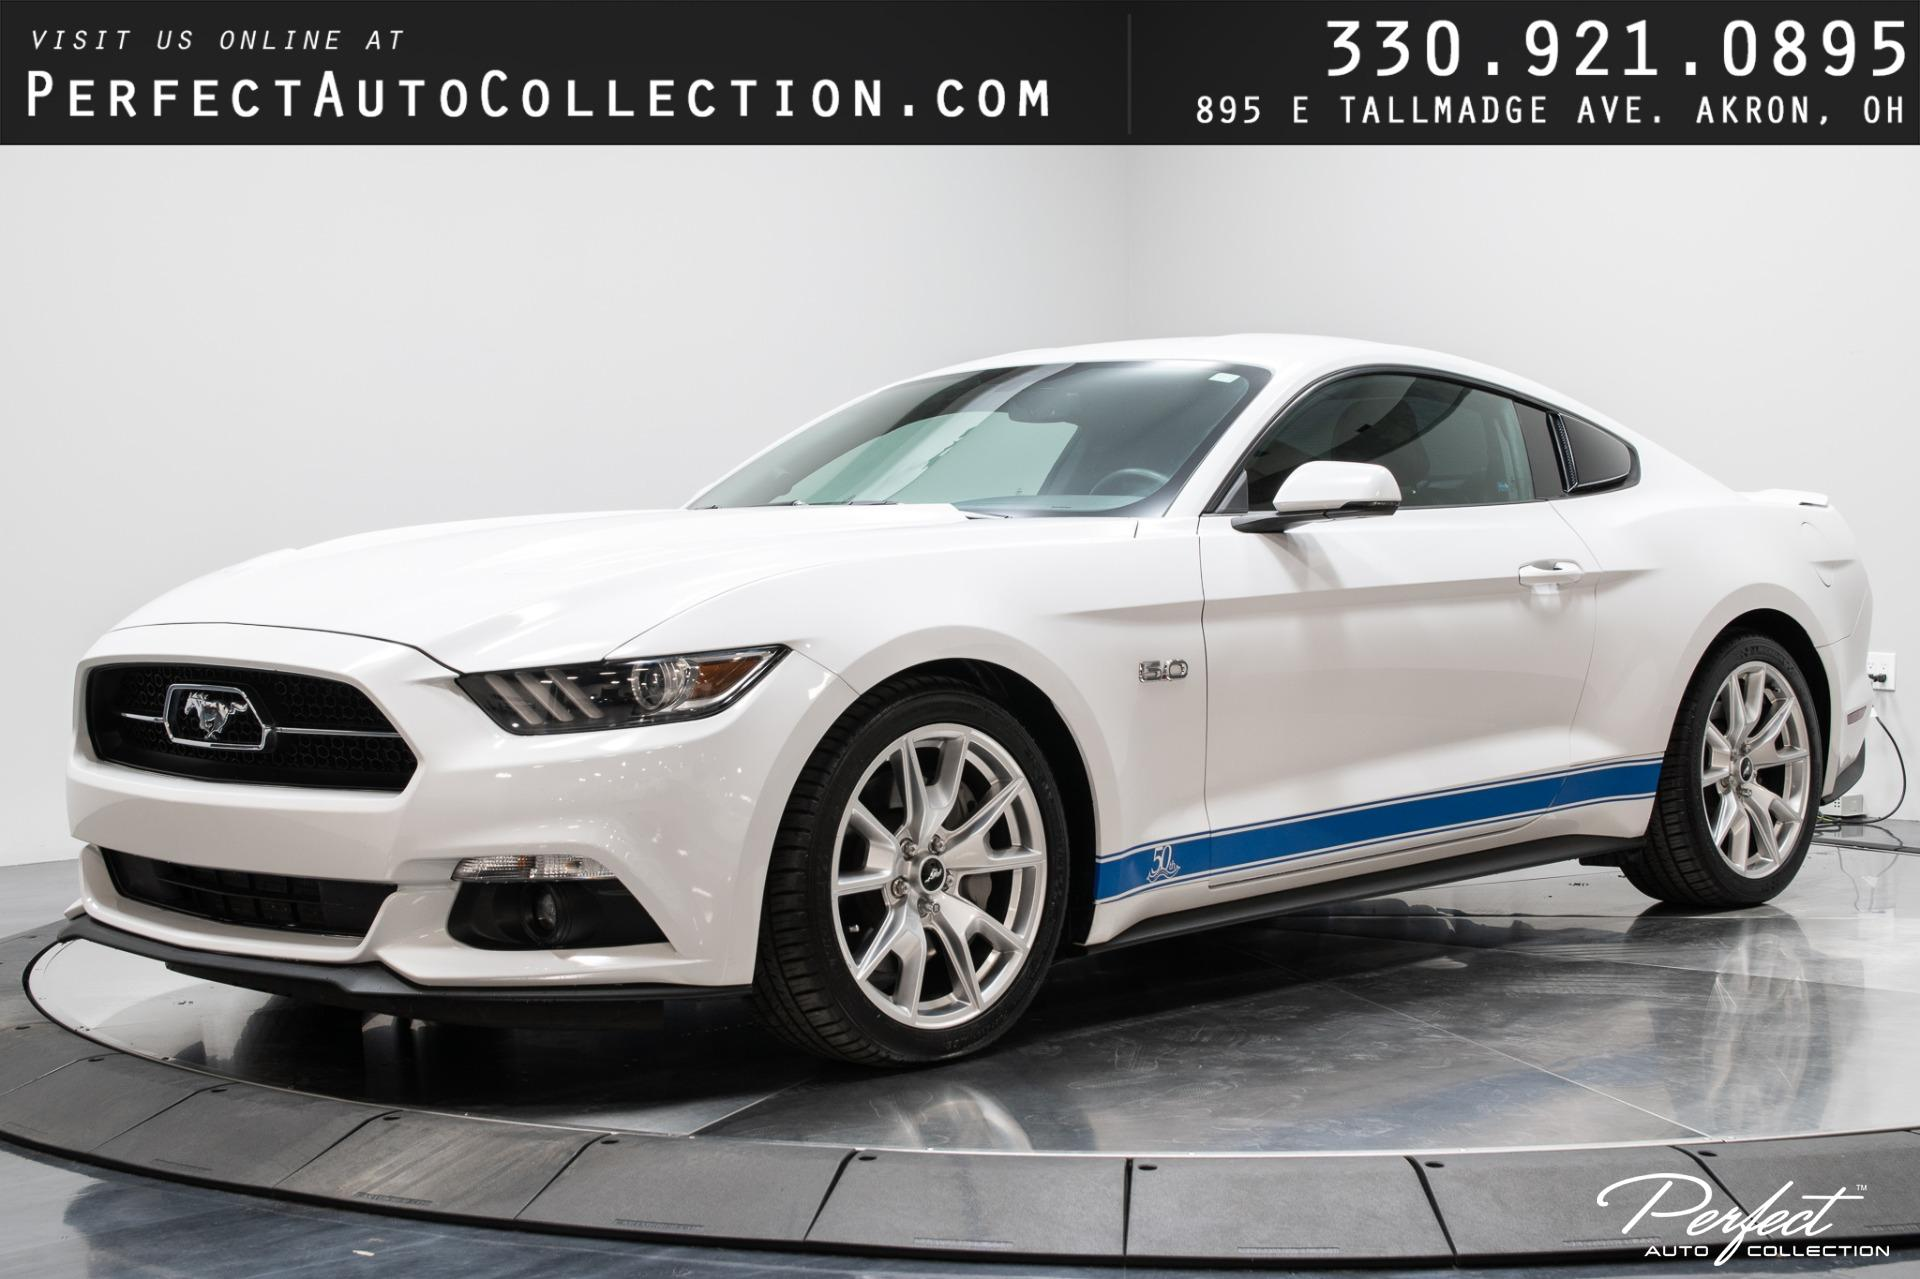 Used 2015 Ford Mustang GT 50th Anniversary Edition for sale $29,995 at Perfect Auto Collection in Akron OH 44310 1